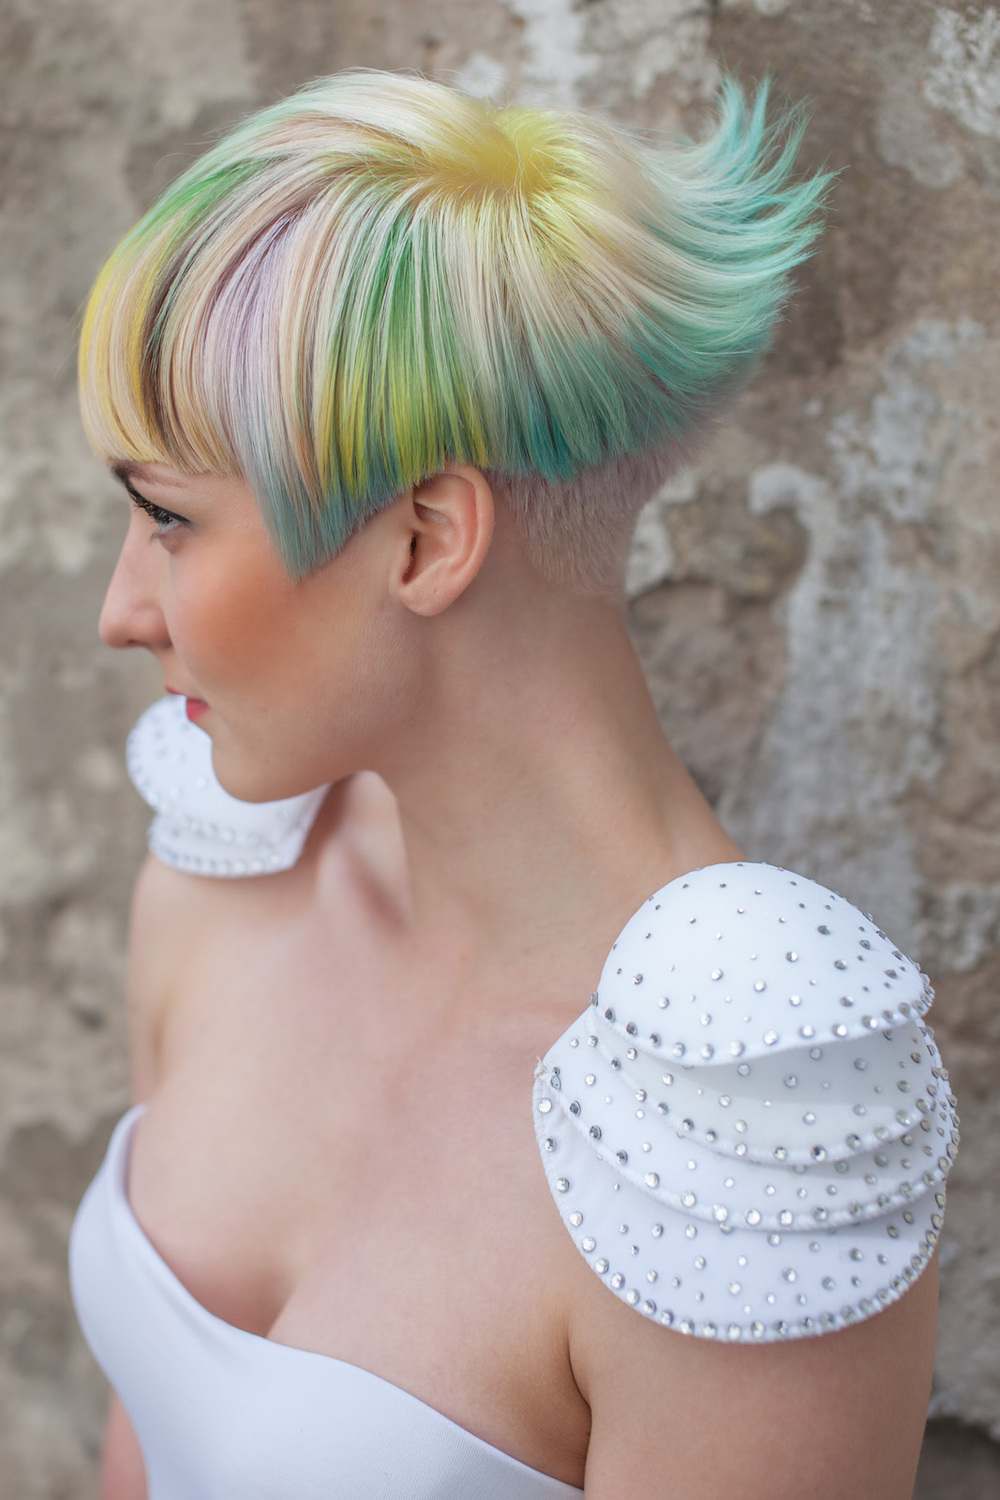 goldwell colorzoom hairdresser competition contest winner photo